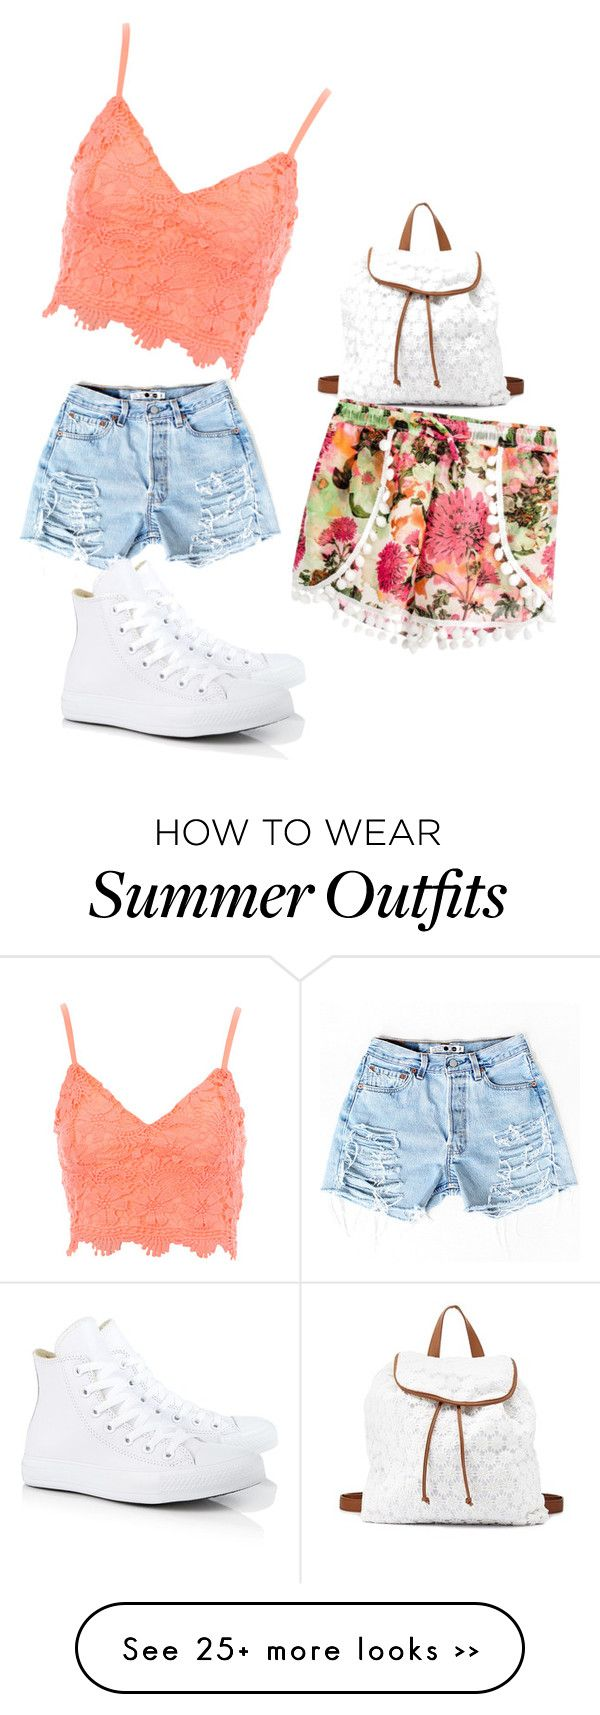 """the summer at school outfit"" by queenlya on Polyvore"